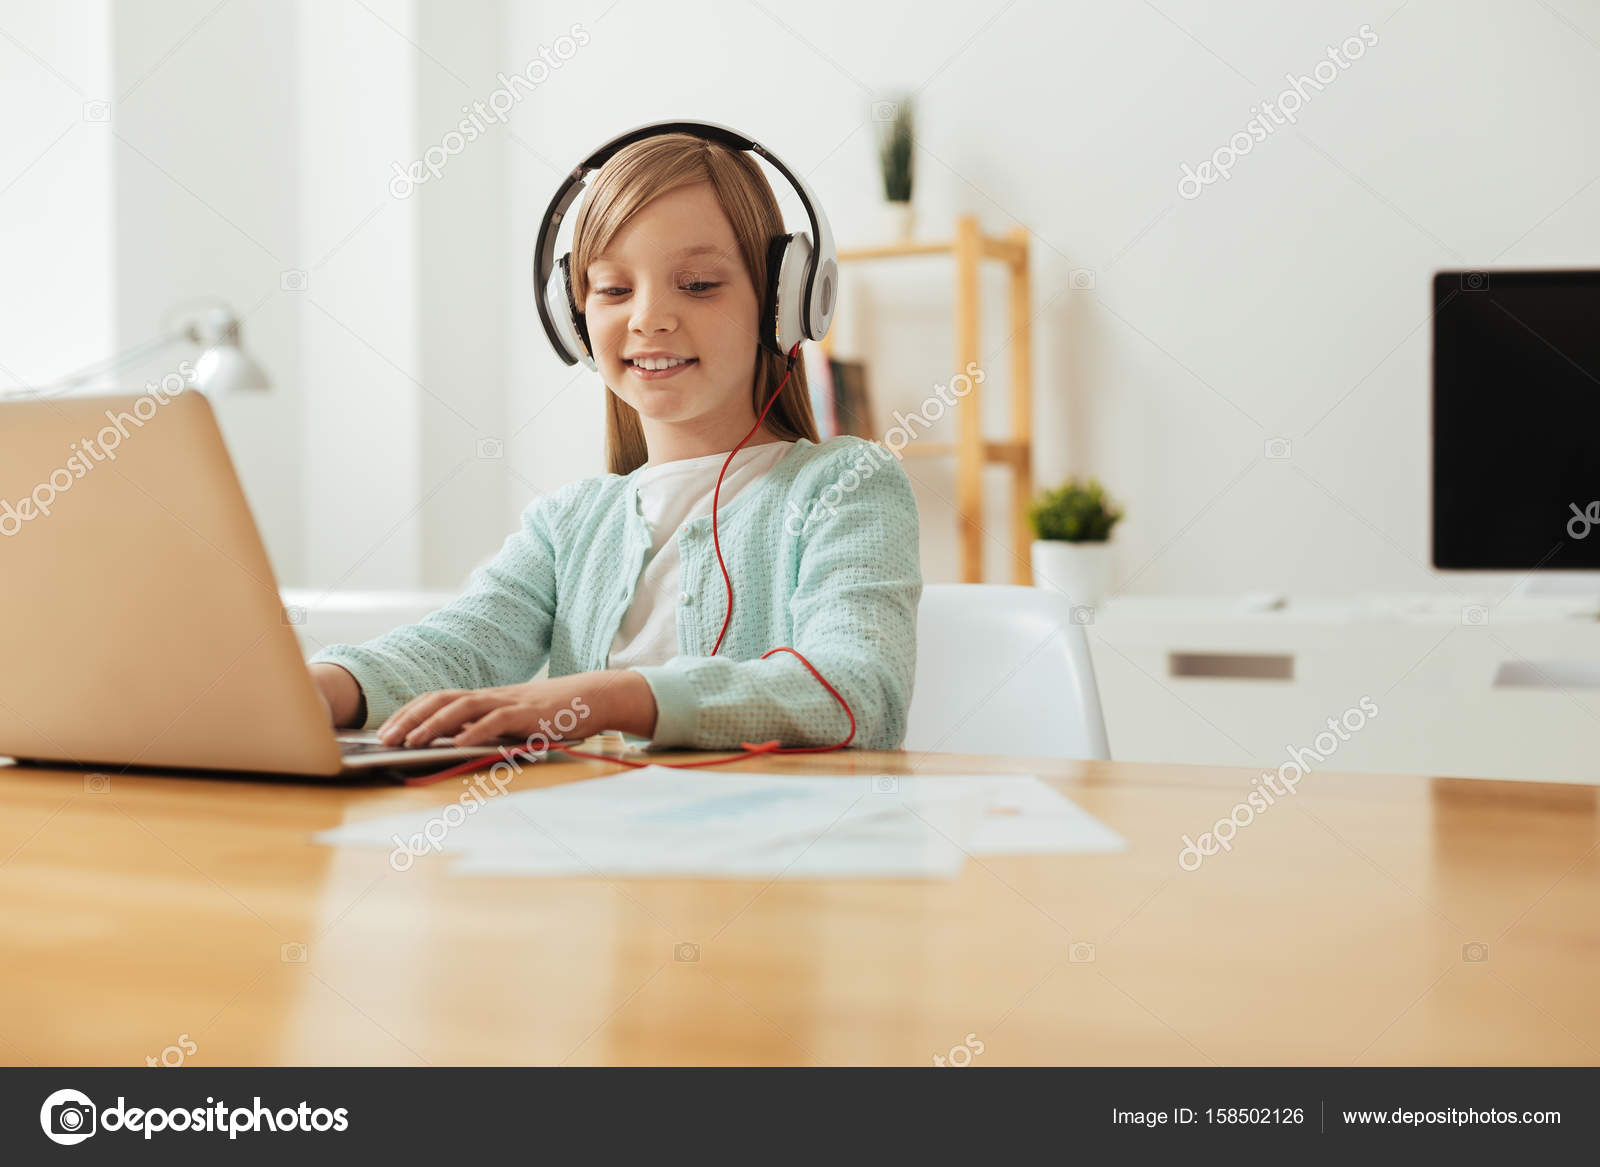 Person Listening To Music While Studying